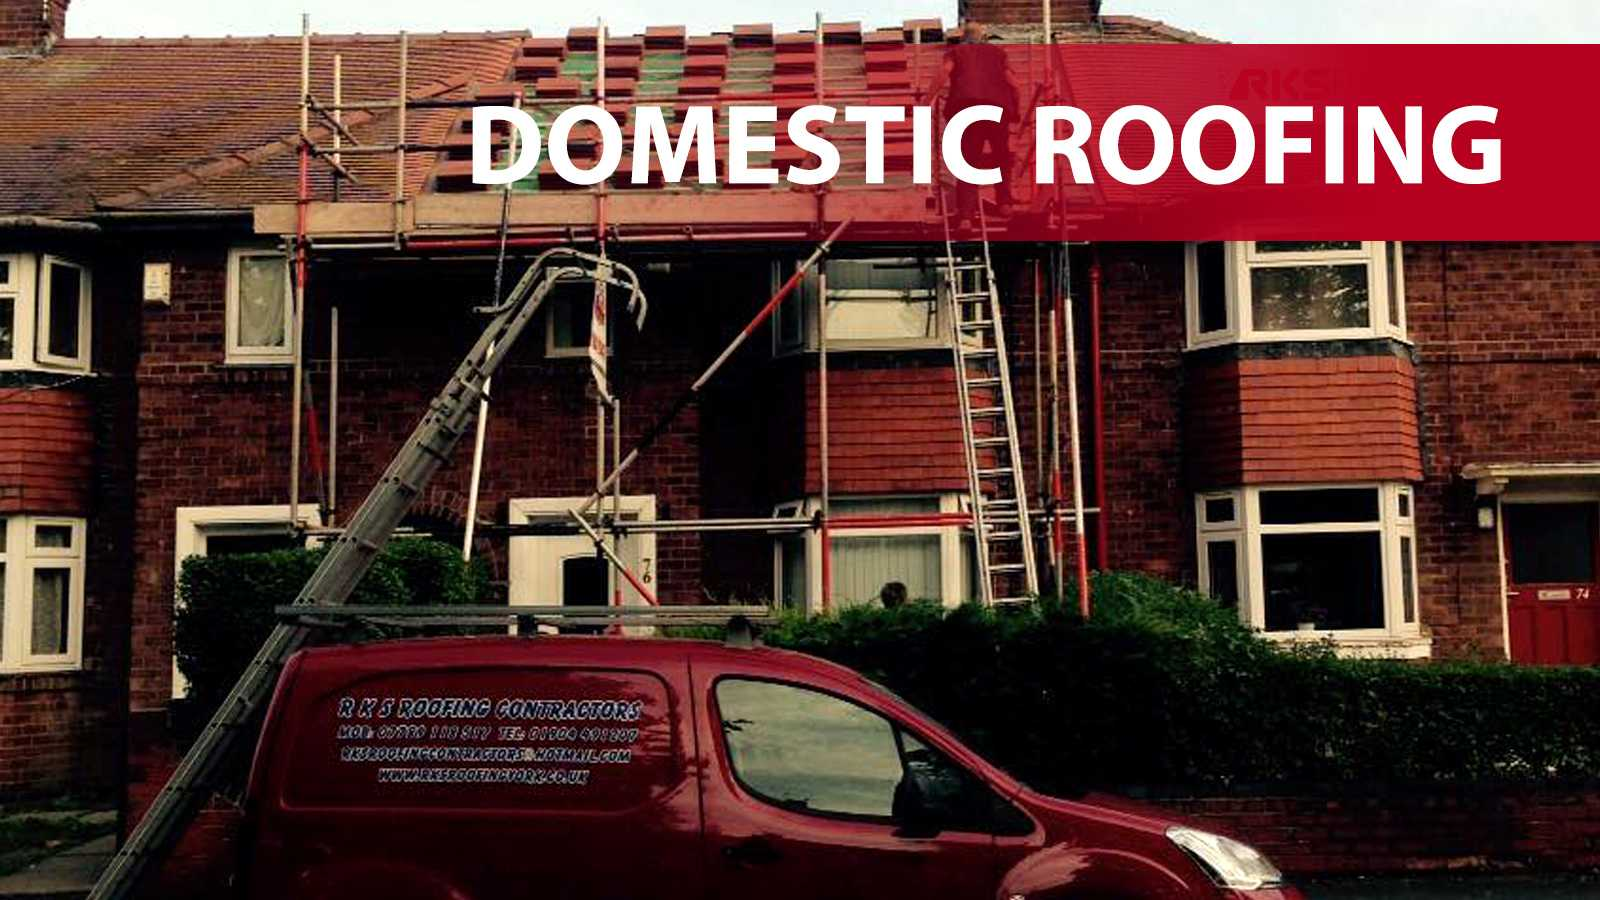 Domestic roofing in York